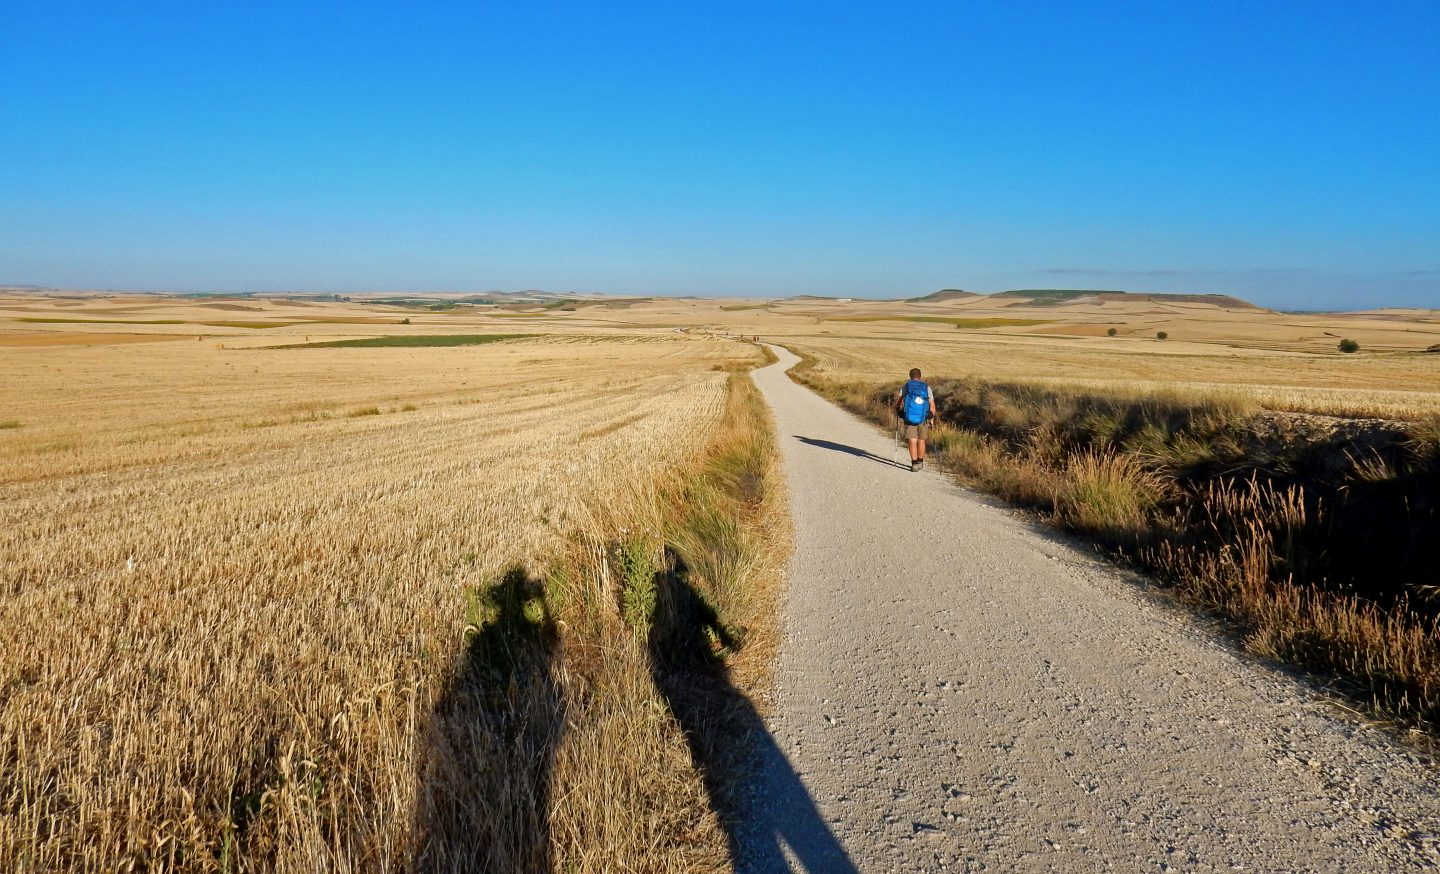 6 Items You Want To Pack For The Camino De Santiago